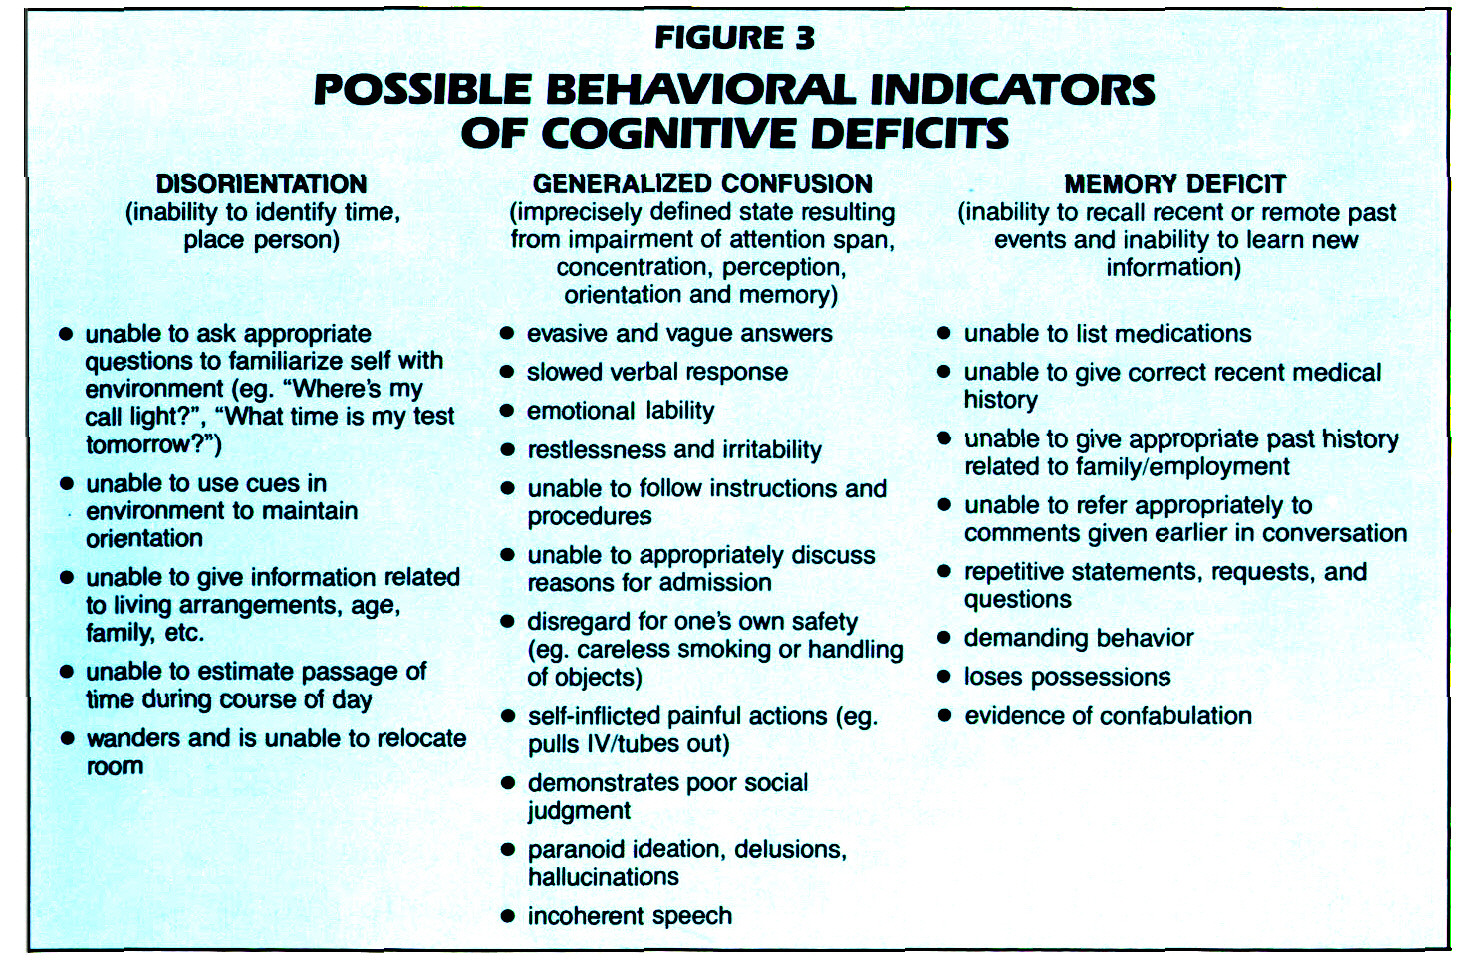 FIGURE 3POSSIBLE BEHAVIORAL INDICATORS OF COGNITIVE DEFICITS